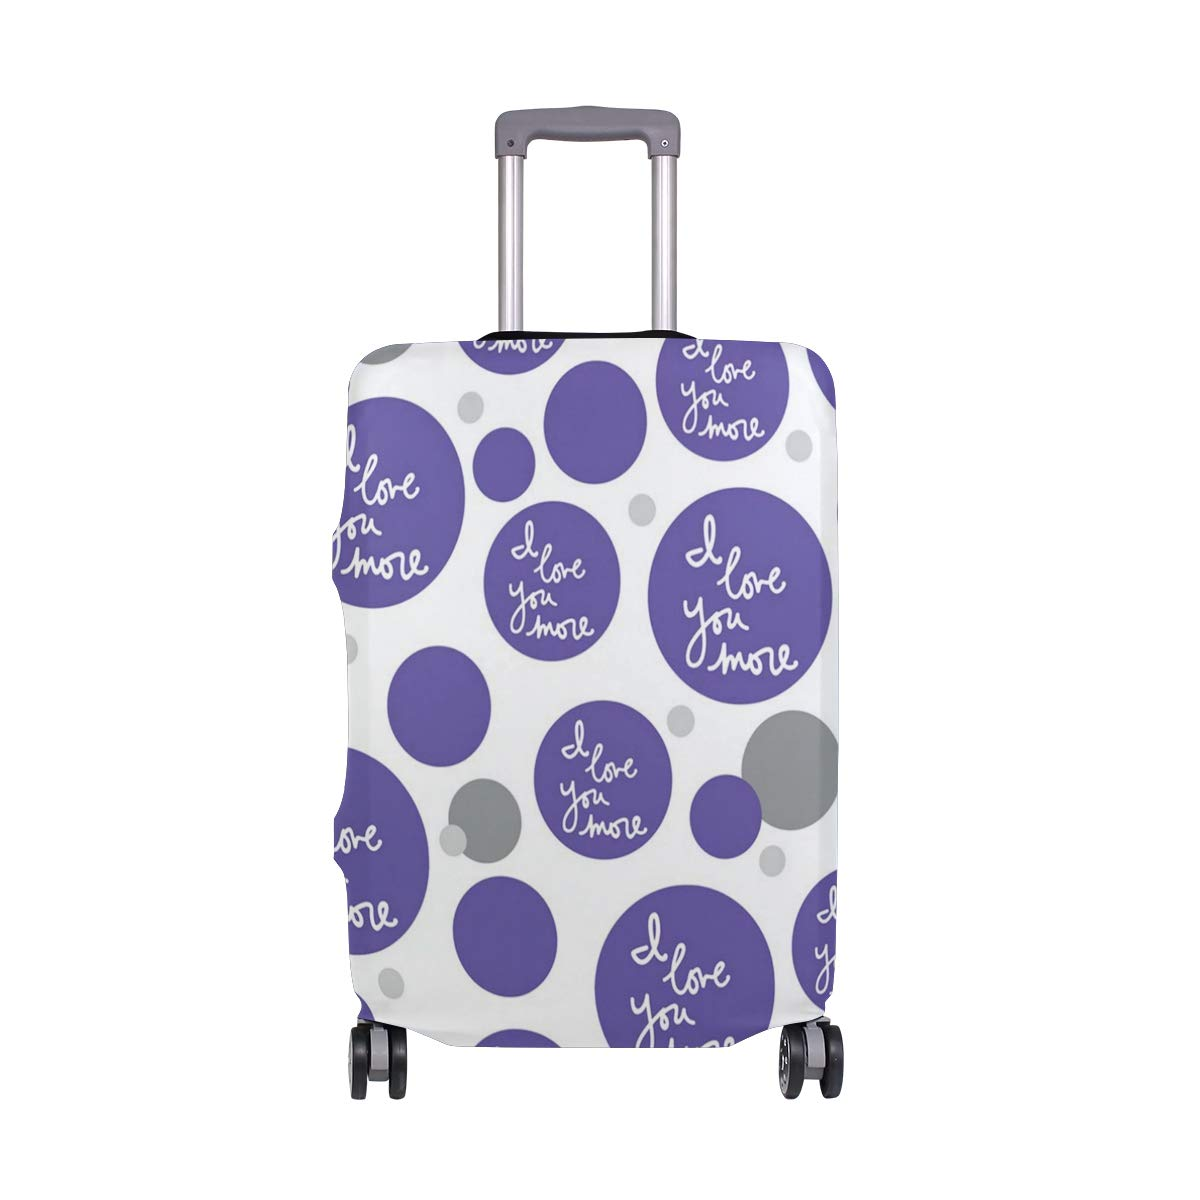 Travel Luggage Cover DIY Prints Protector Suitcase Baggage Fit 18-32 inch - I Love You More